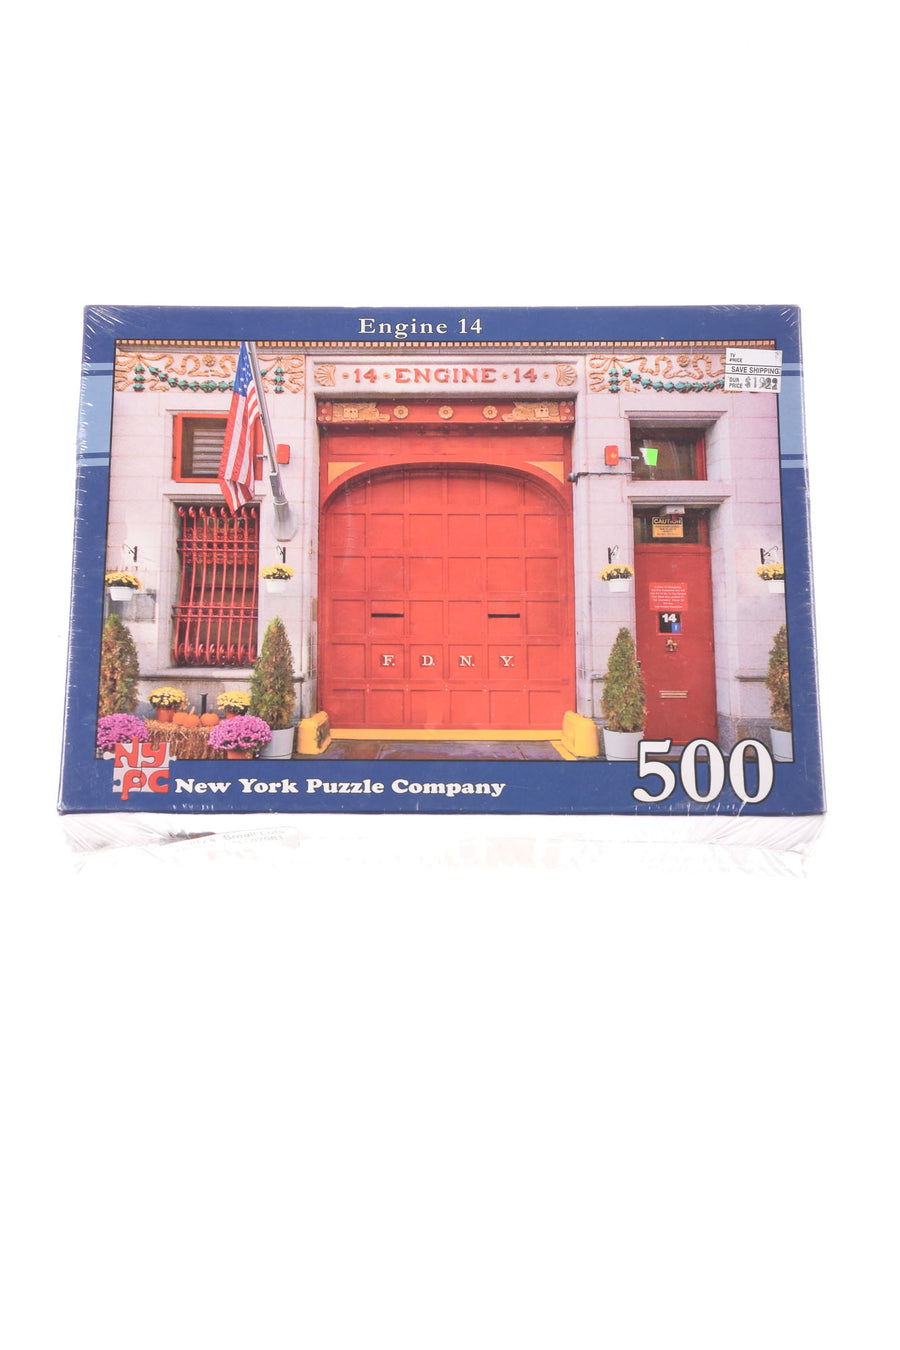 Puzzle By New York Puzzle Company